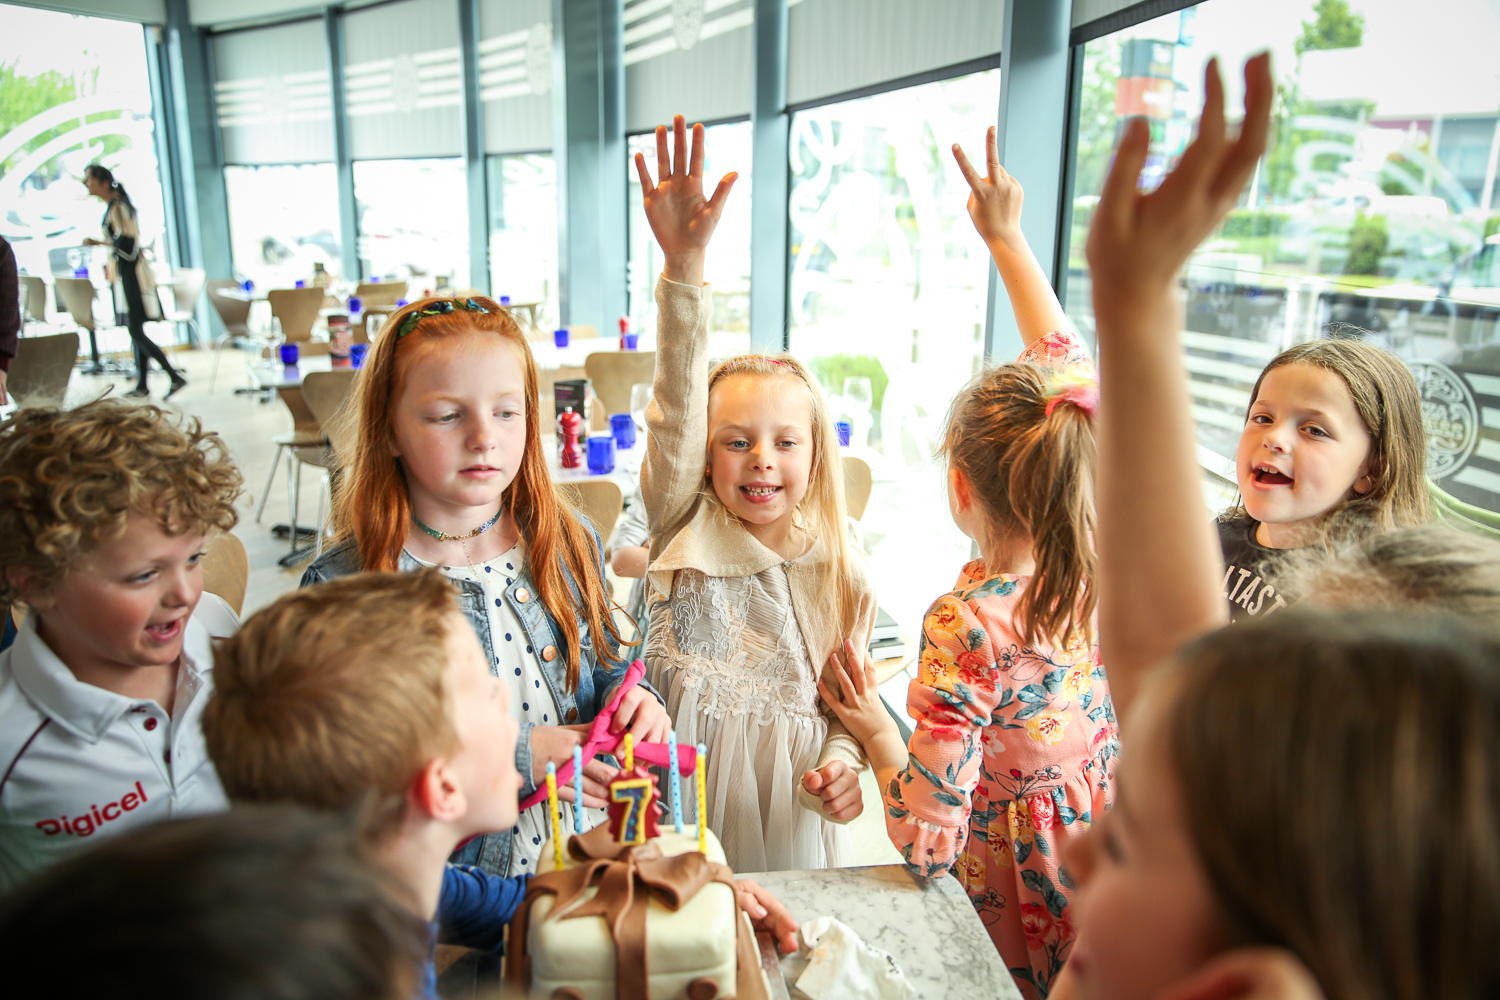 Pizza-Express-Kids-indoor-Birthday-Party-family-photographer-South-Wales-Natalia-Smith-Photography-0019.jpg